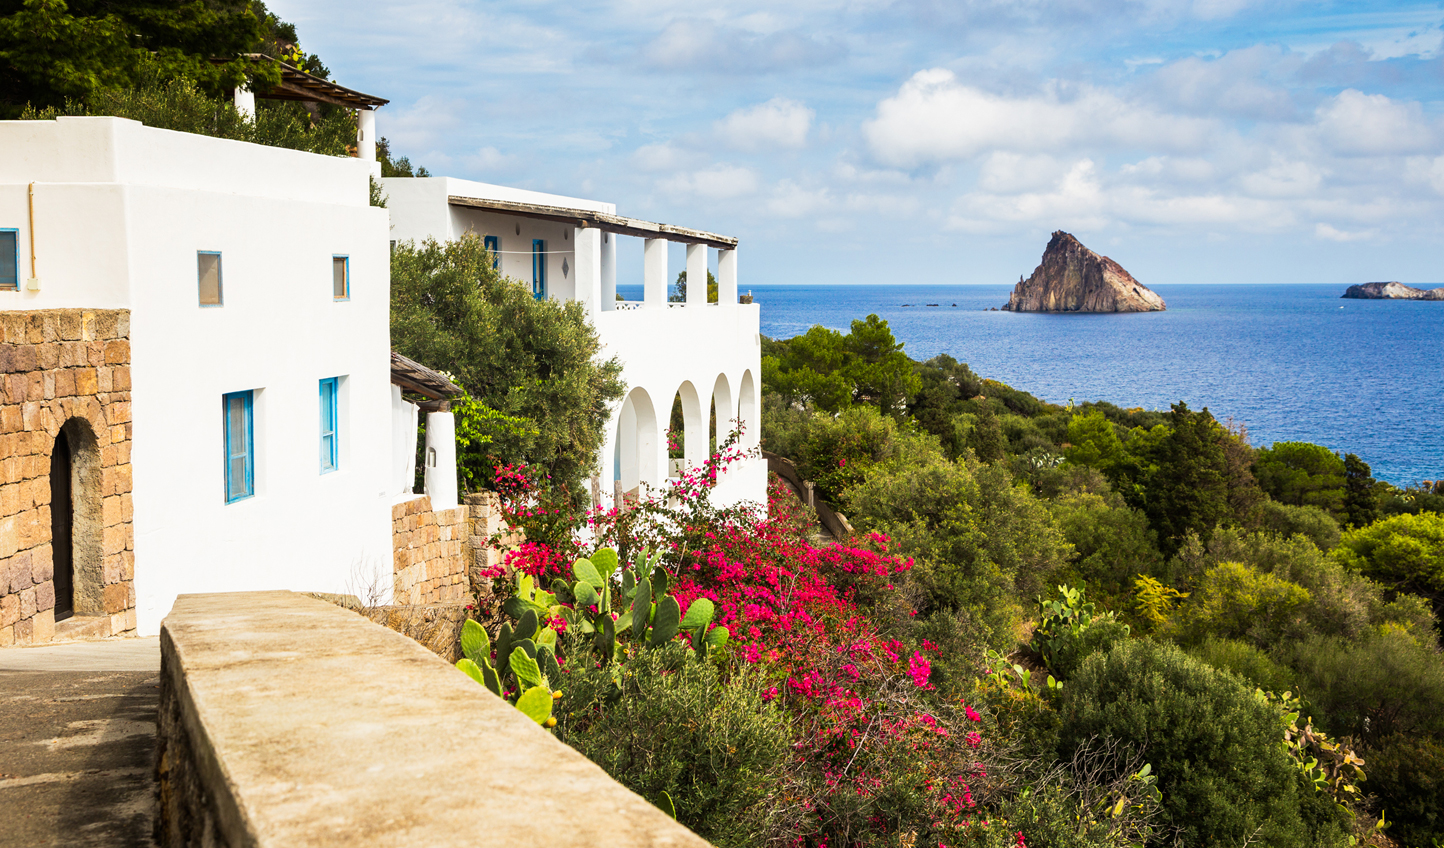 Settle into island life on Panarea